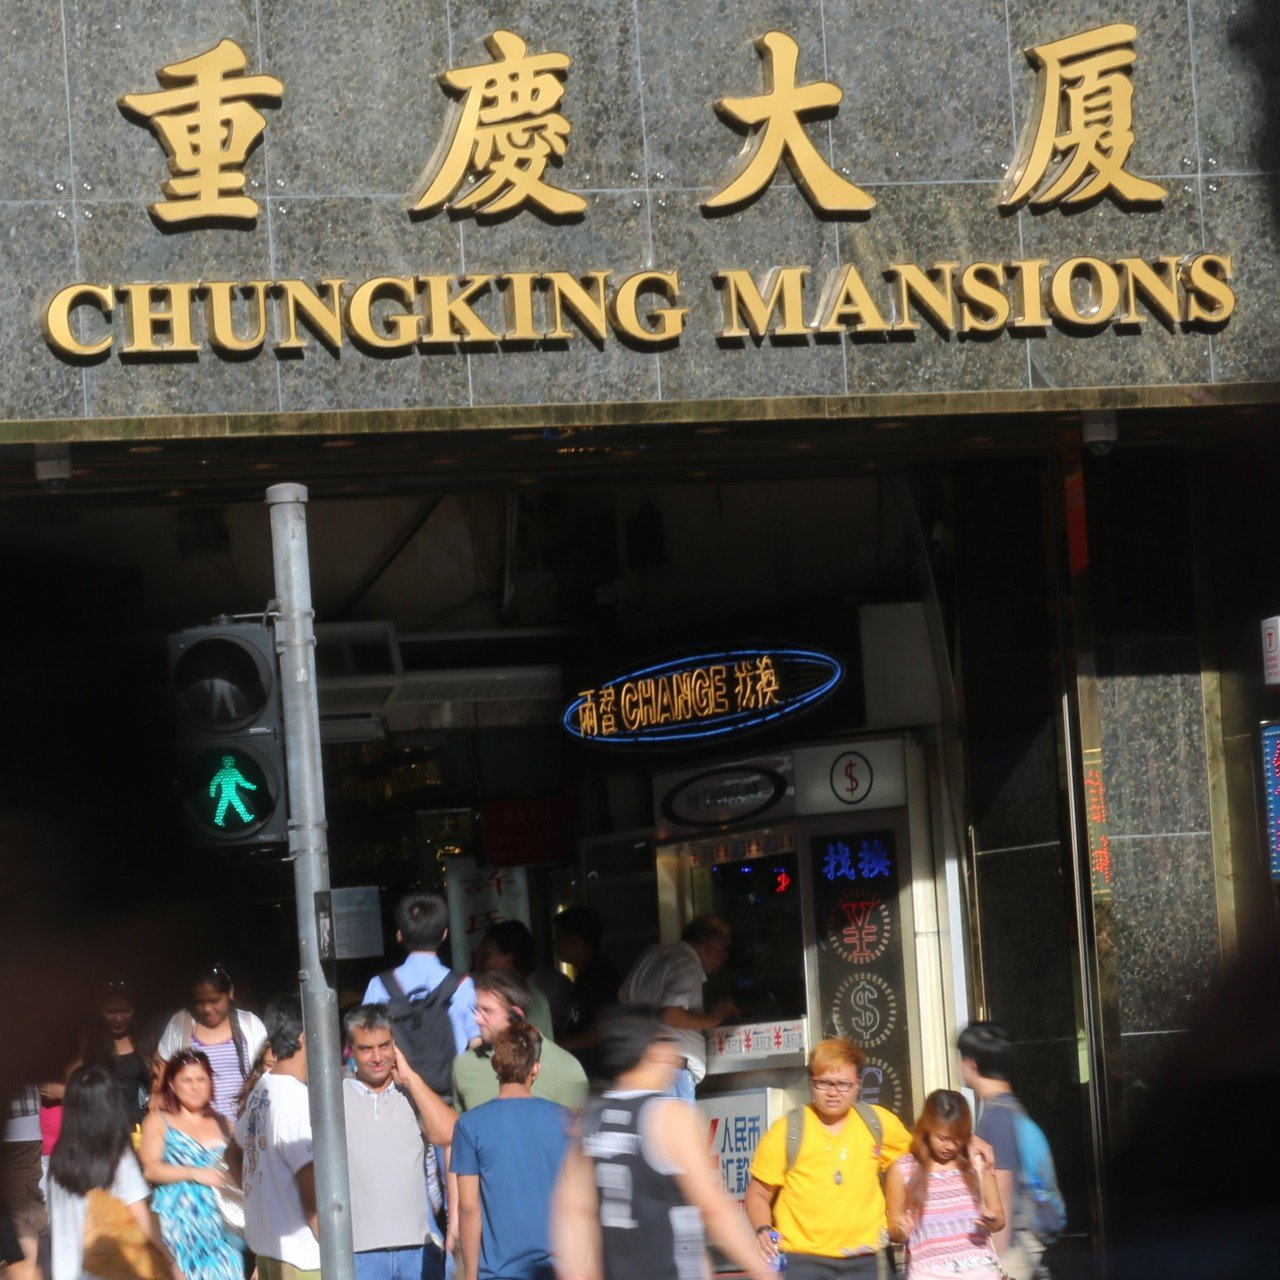 Chungking Mansions: don't believe the horror stories – some of Hong